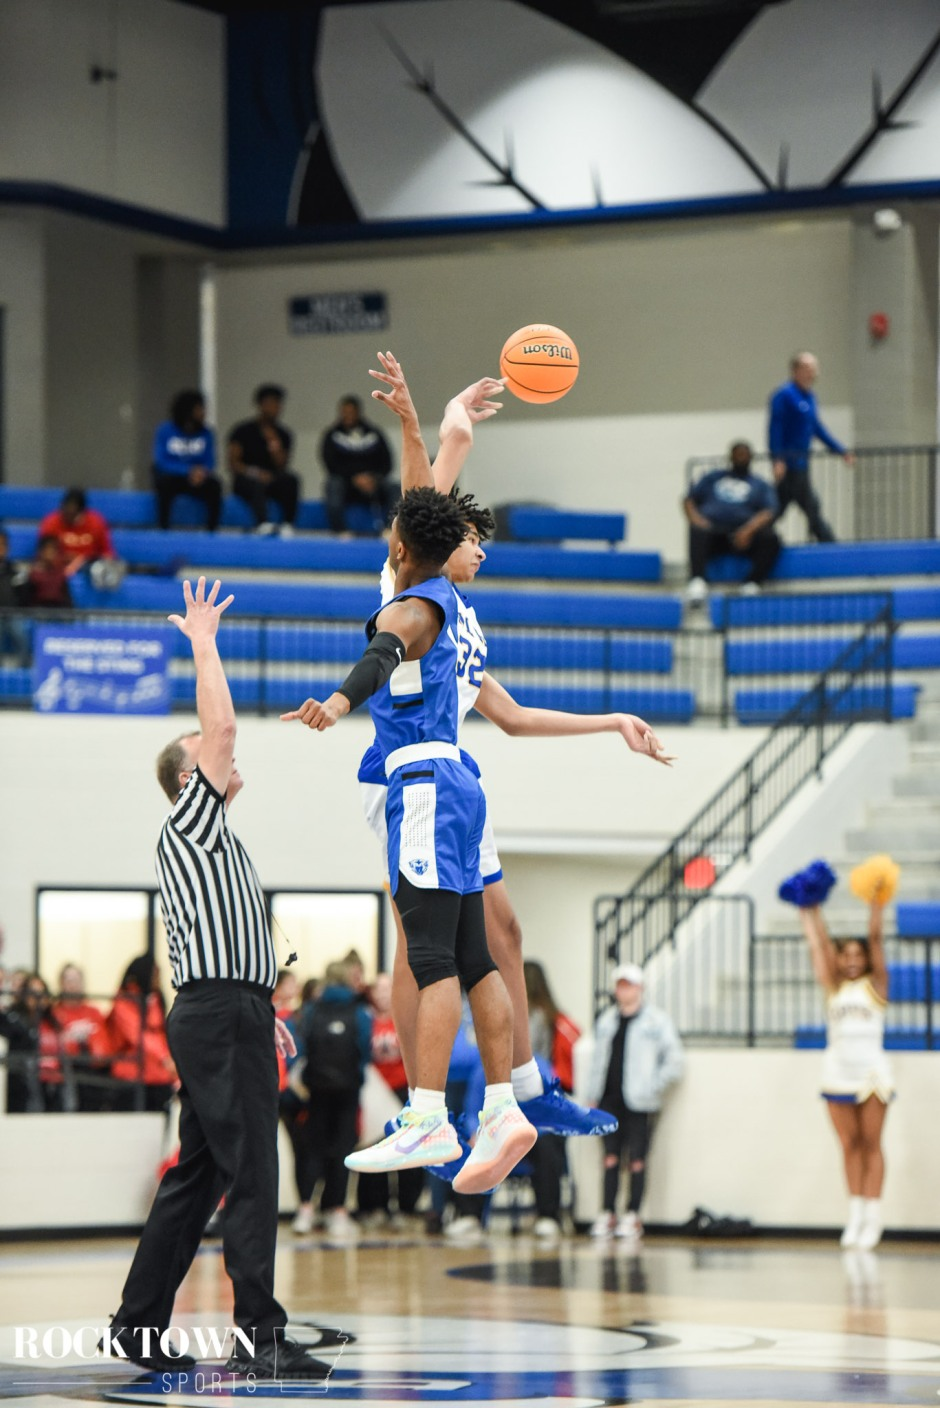 NLR_conway_bball_2020(i)-12